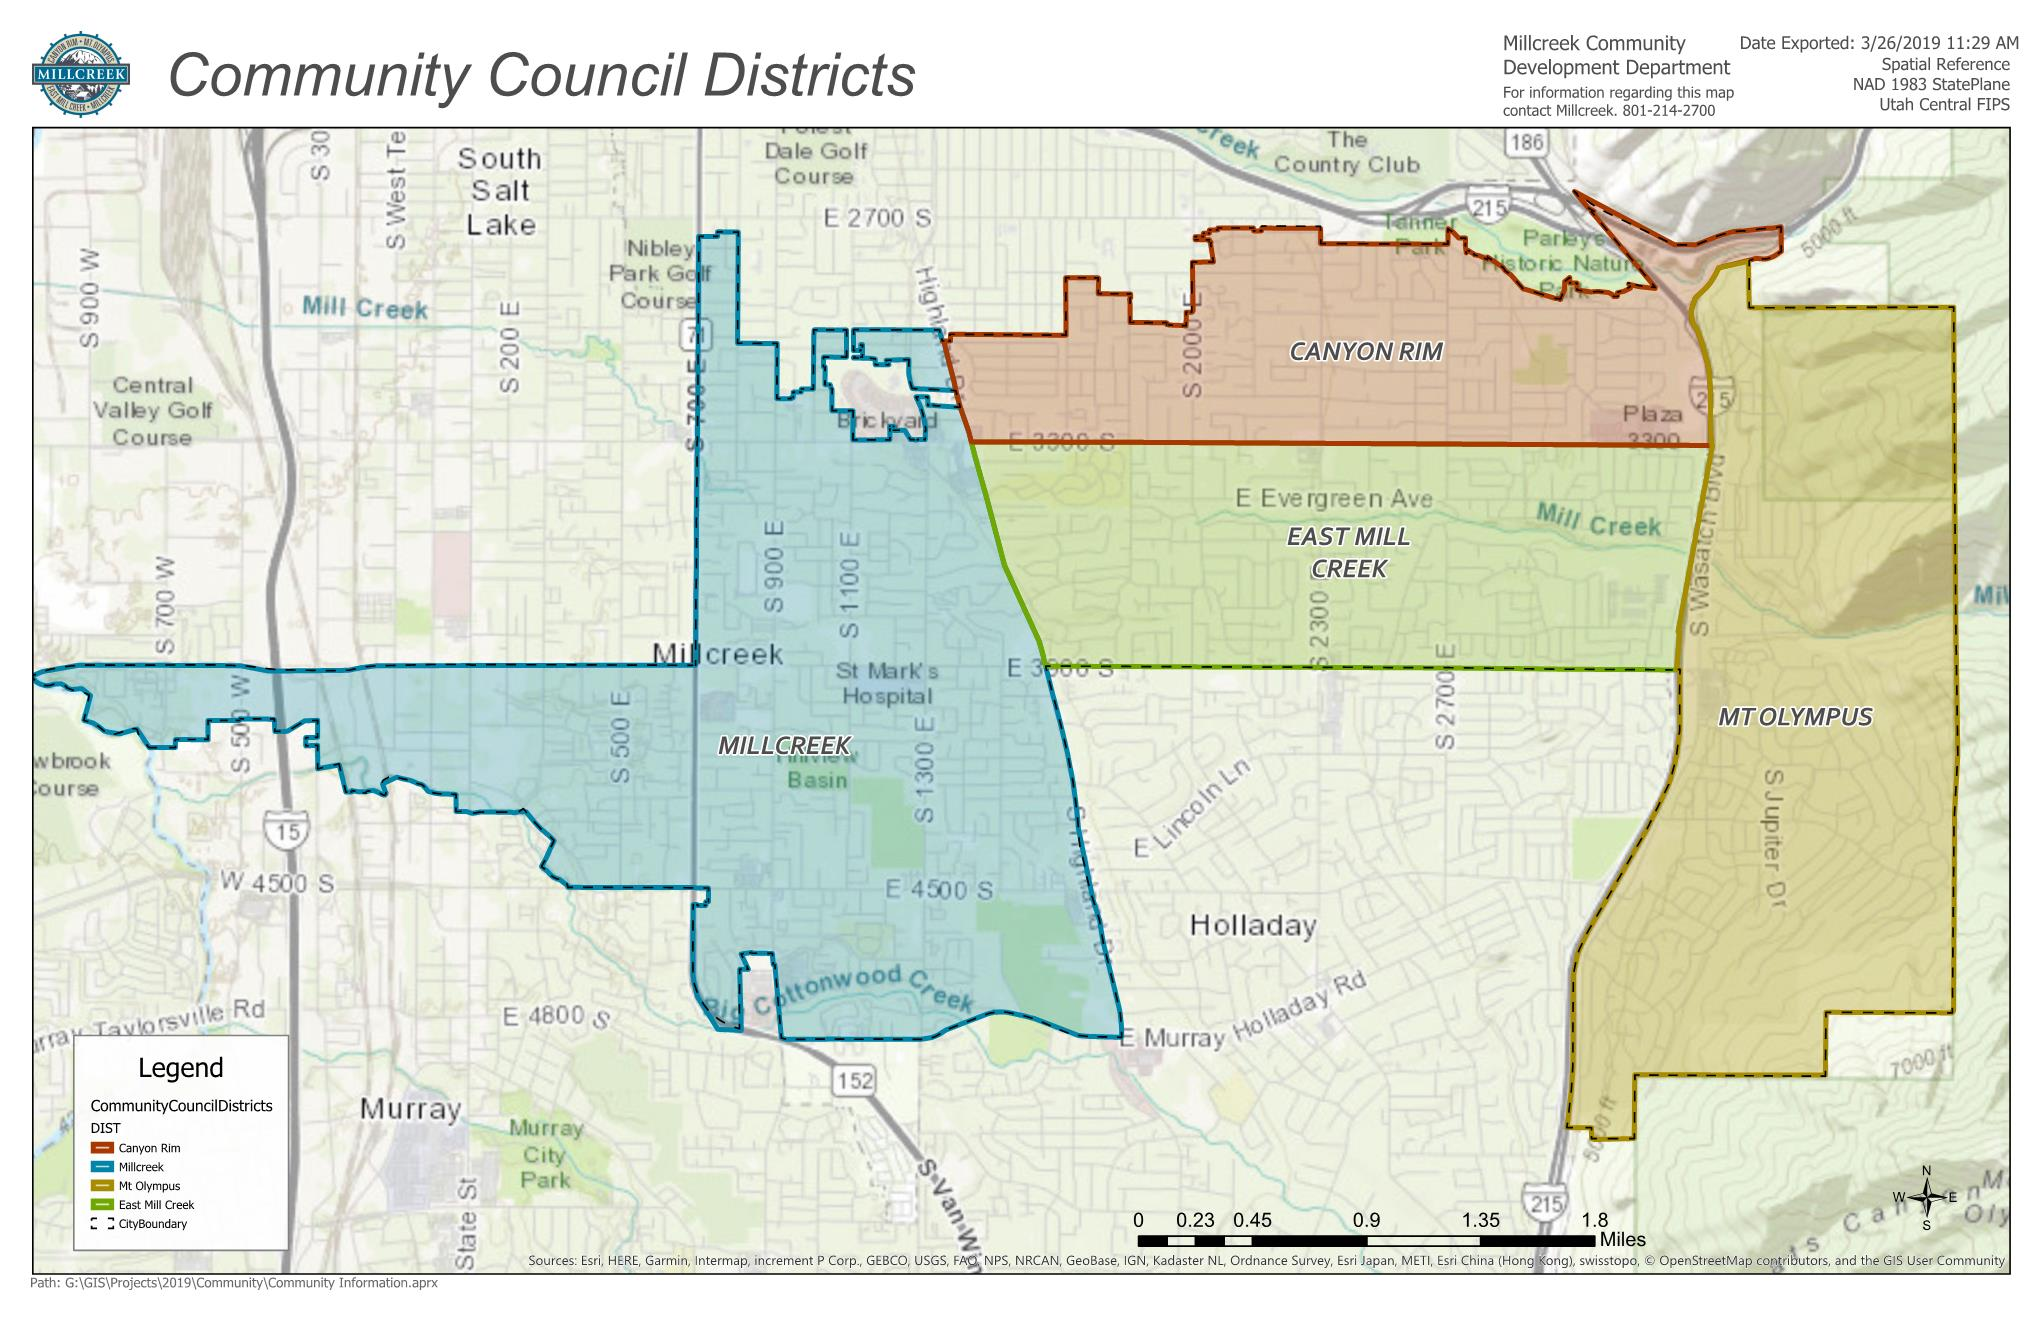 Community Council Districts